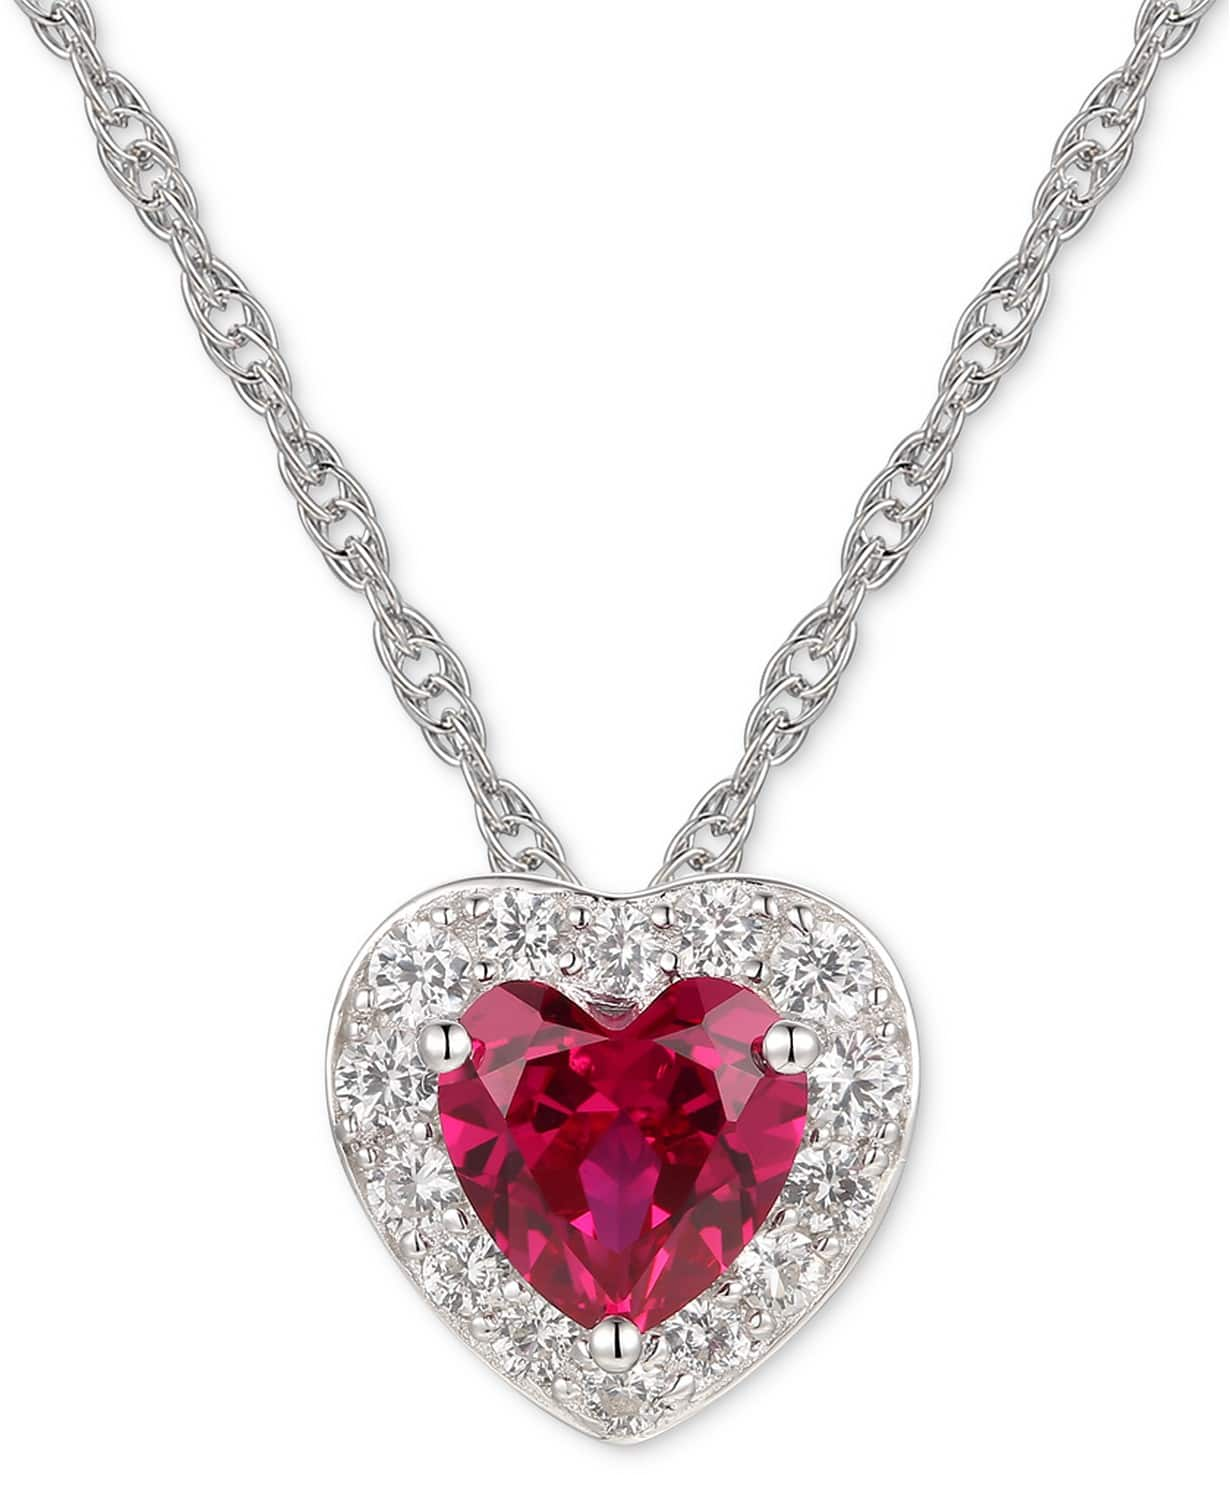 """Macys Jewelry Flash Sale: Macy's Lab-Created Ruby (1-1/3 ct.t.w.) & White Sapphire (1/2 ct. t.w.) 18"""" Pendant Necklace in Sterling Silver $7.50, More + free ship on $25+"""